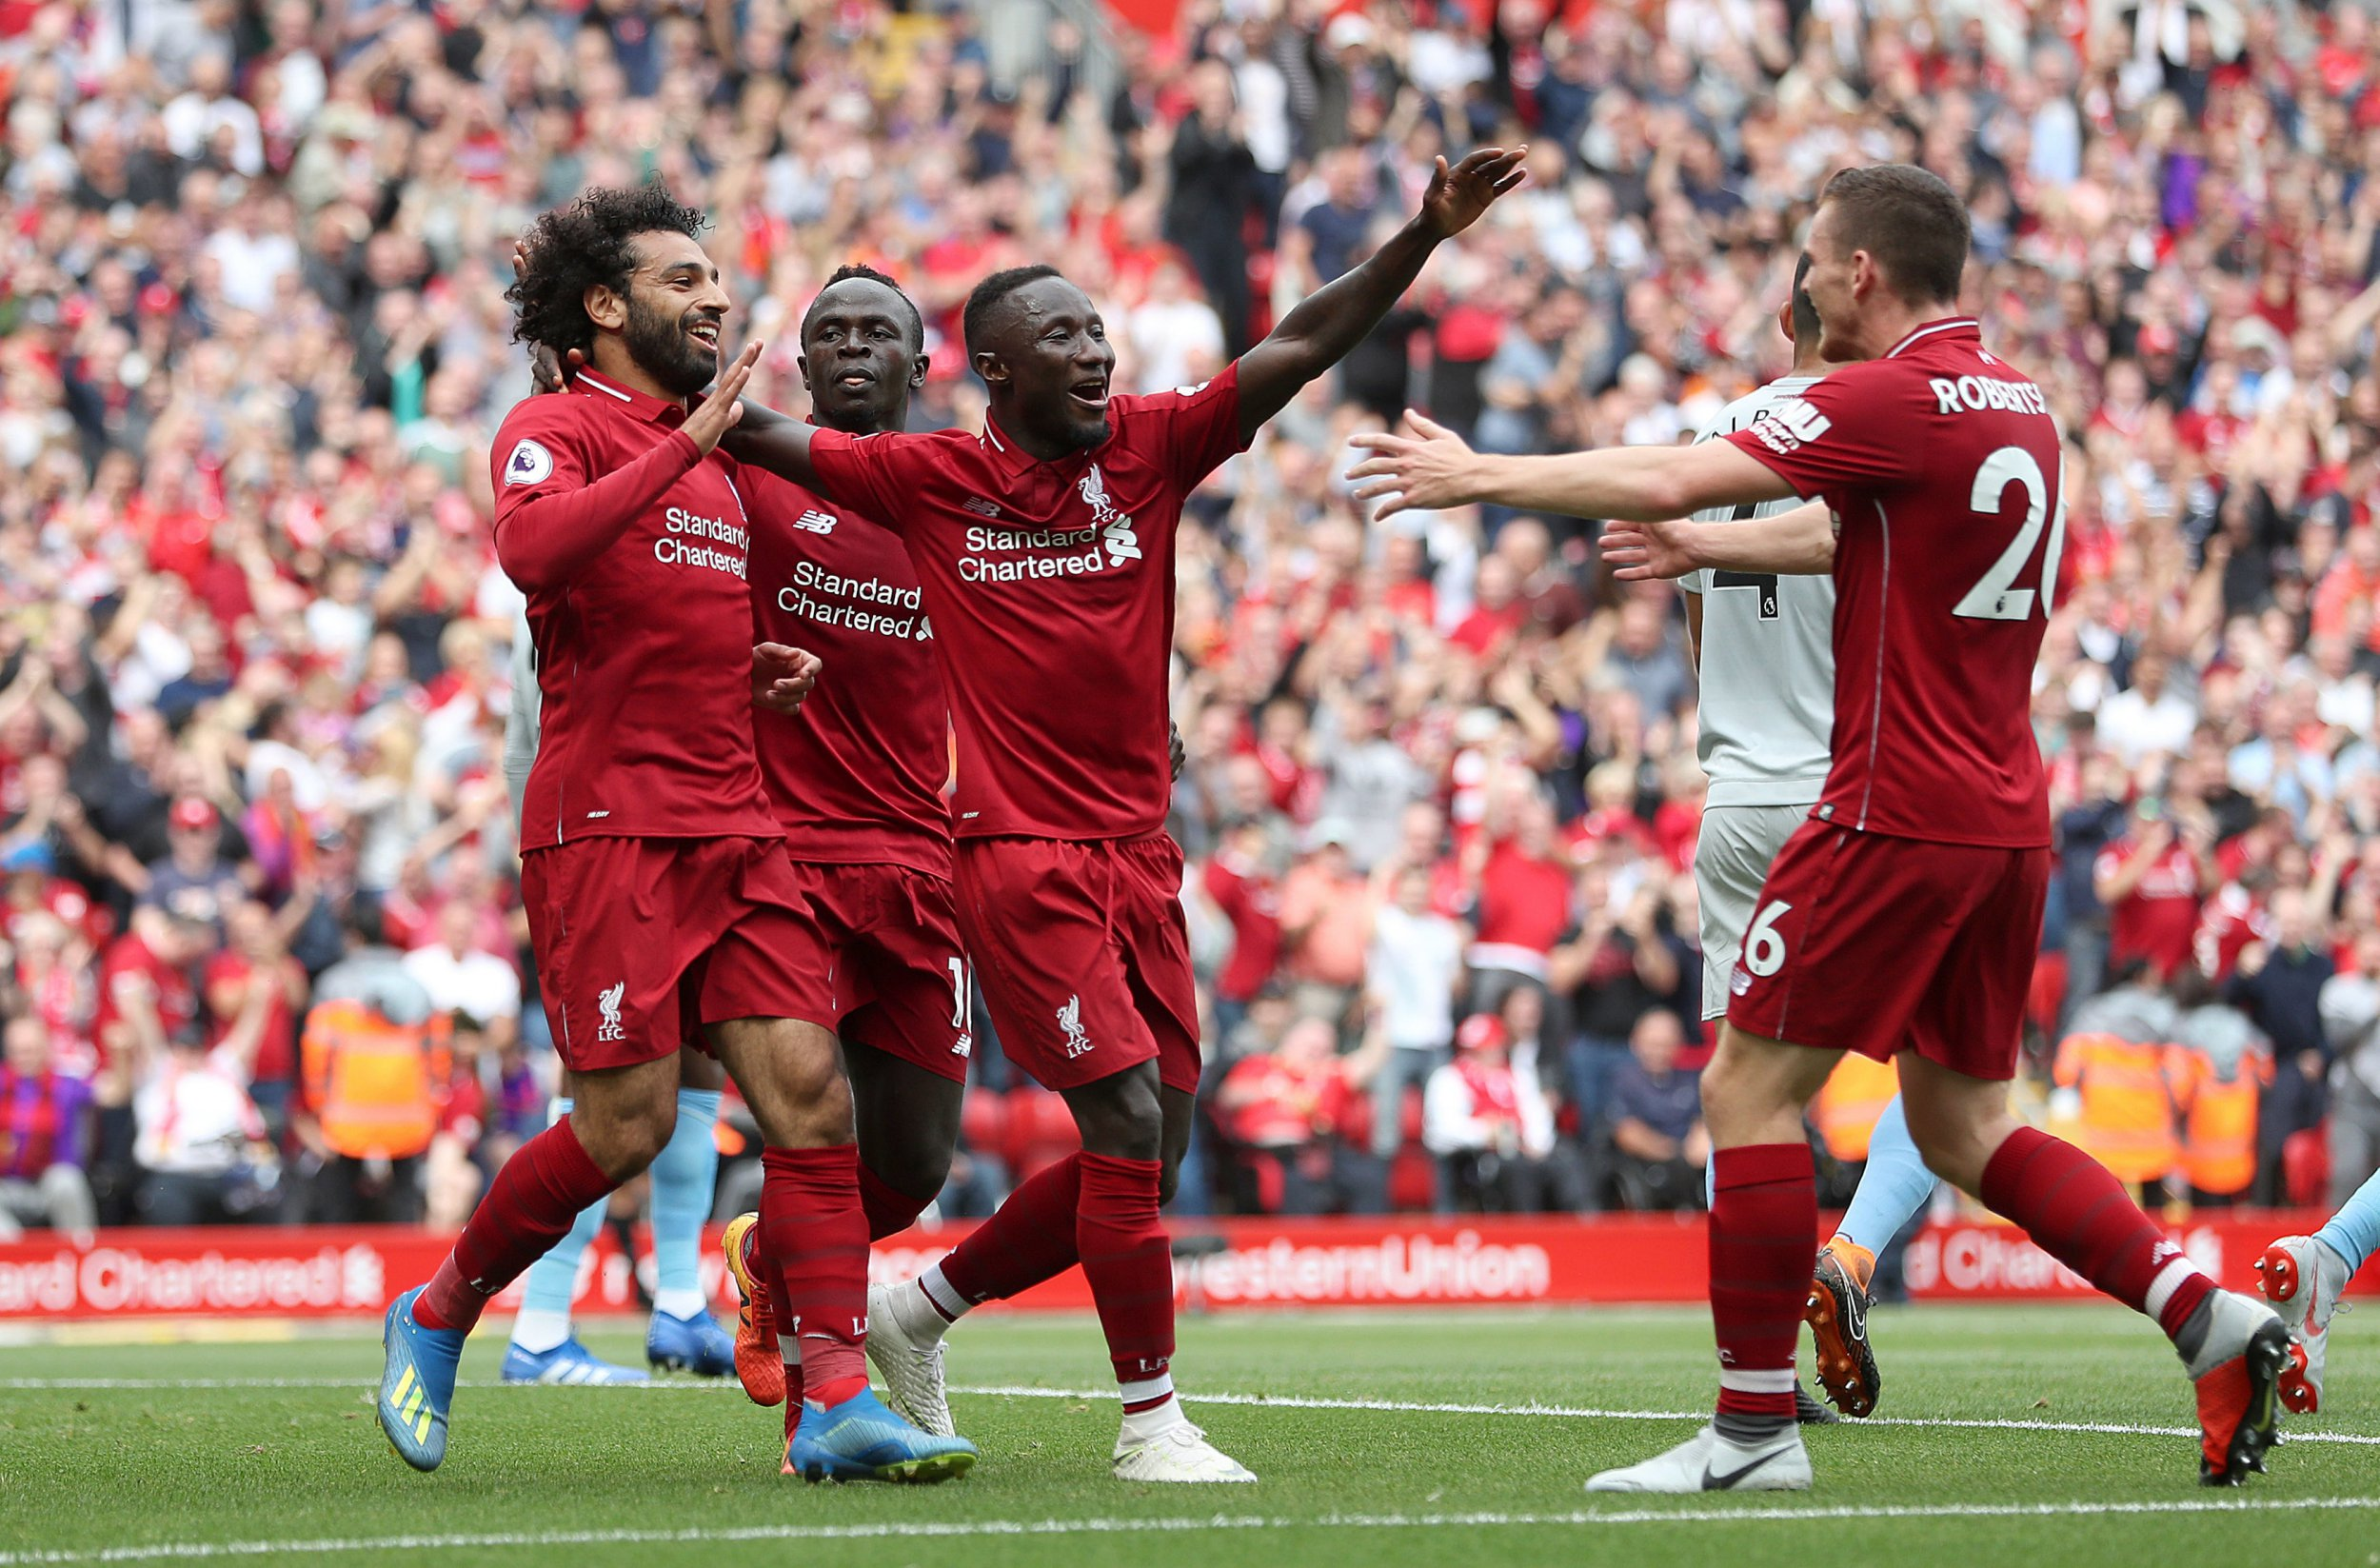 Naby Keita's flawless debut & silky Salah: Liverpool lay down early marker against West Ham